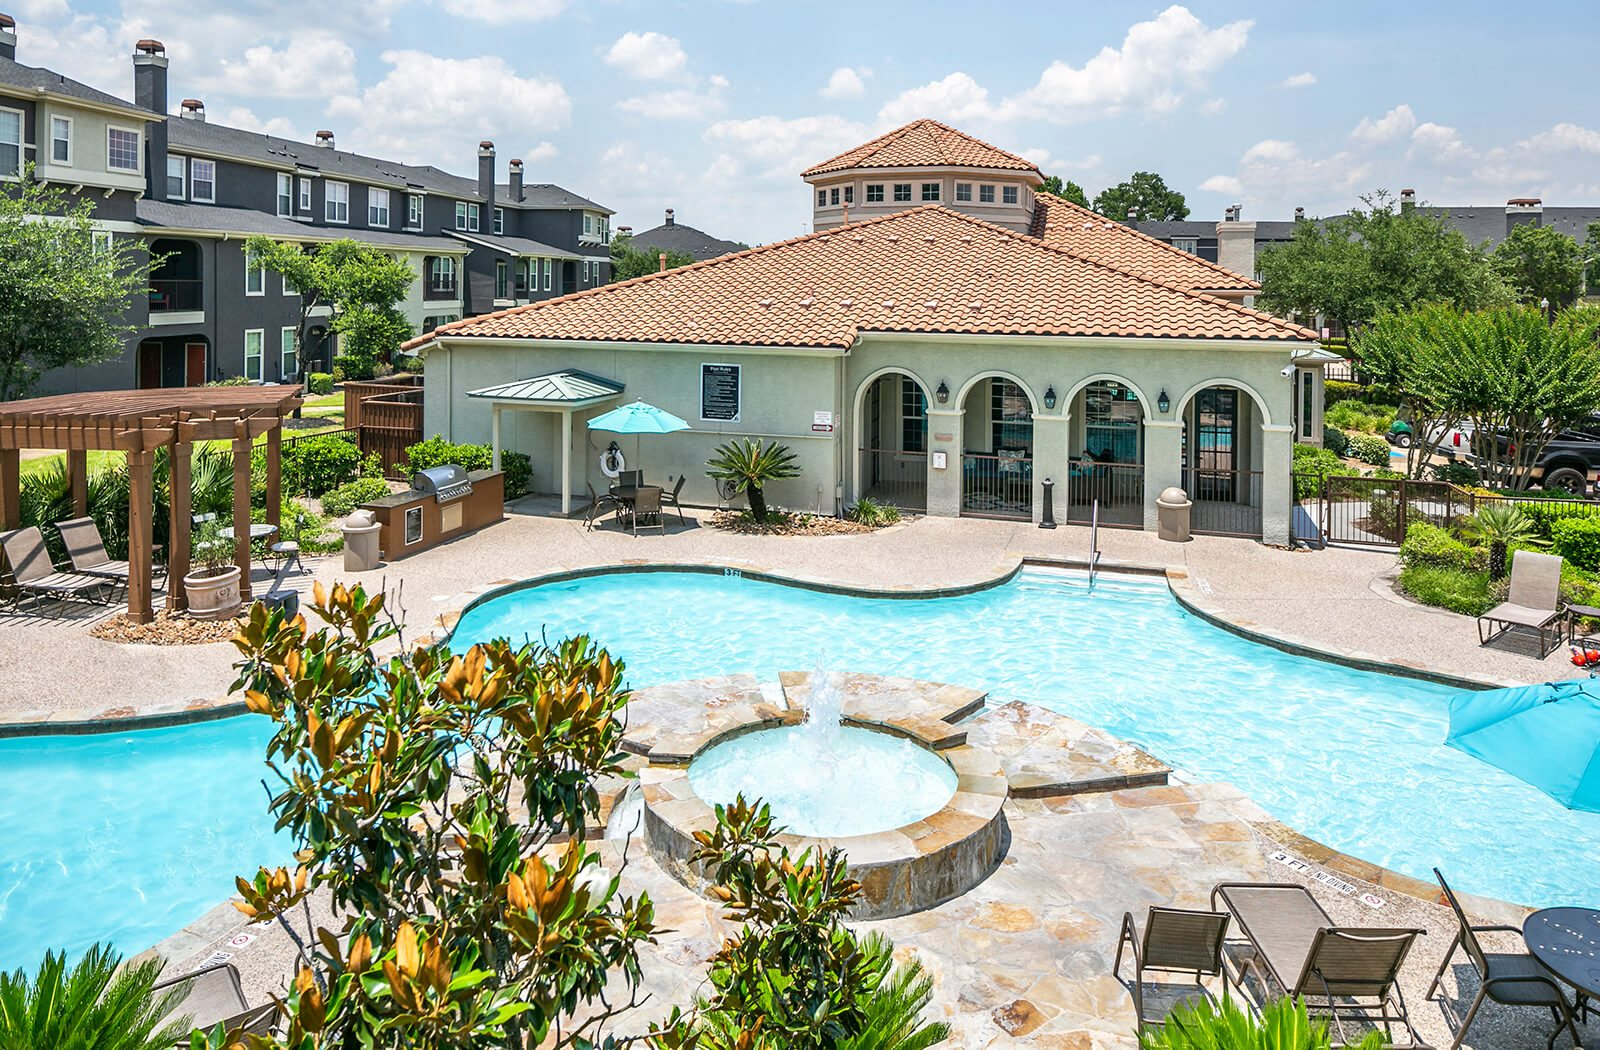 Pool overview at The Dominion Apartments in Conroe, TX